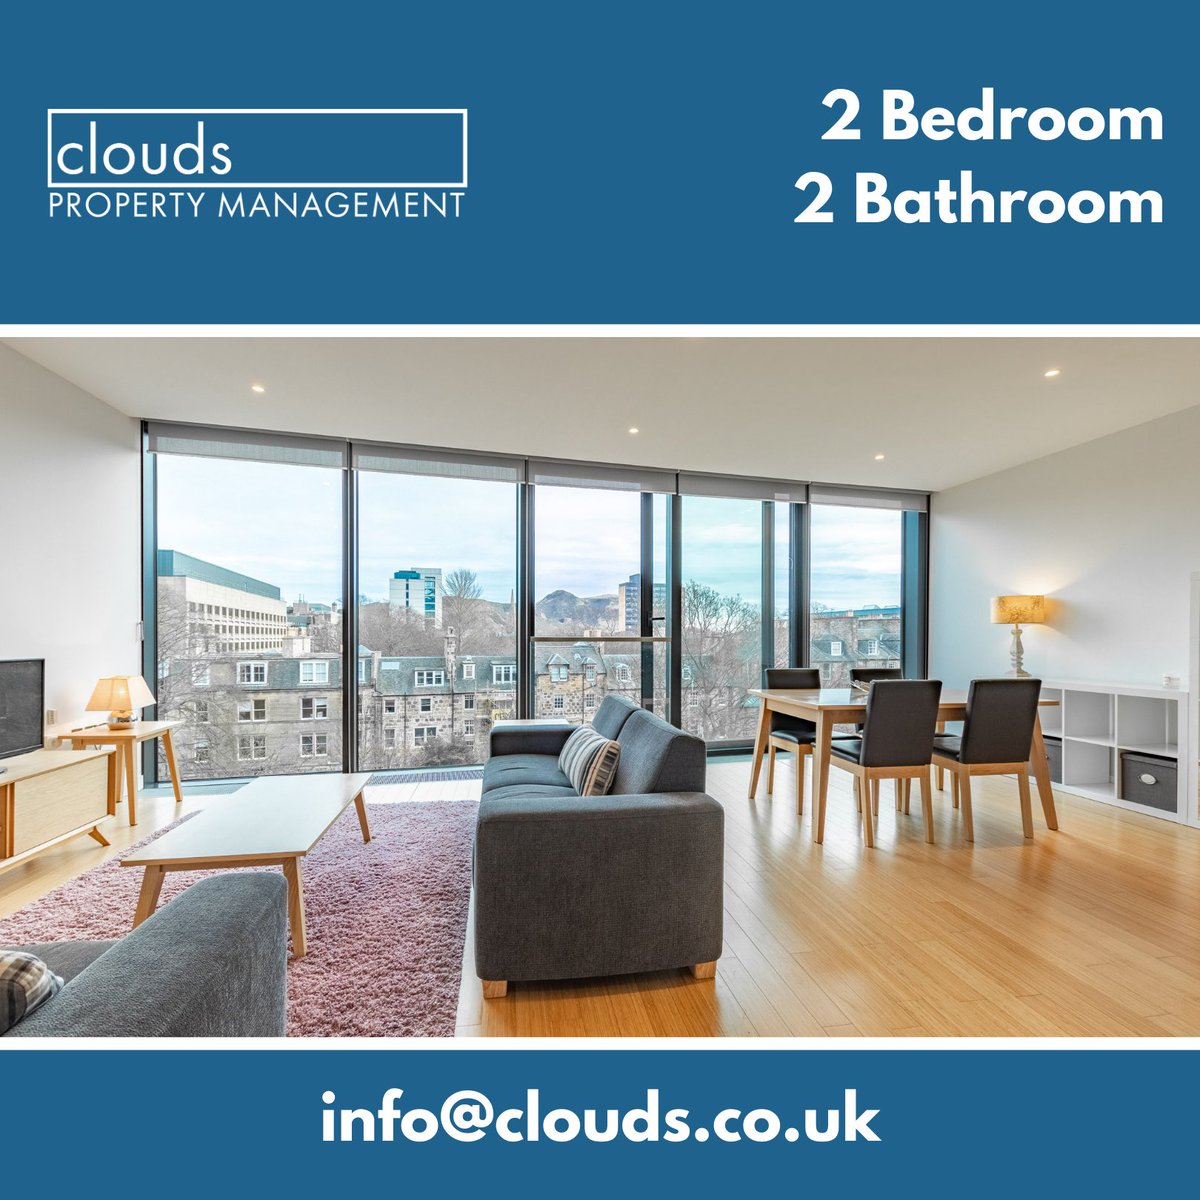 ☁️ AVAILABLE NOW ☁️  Take a look through some of the great properties we have available at the moment in the prestigious Quartermile Development 😍   If you would like to know more about any of these properties send us a DM 📨  #Edinburgh #Property #Clouds #luxury #torent